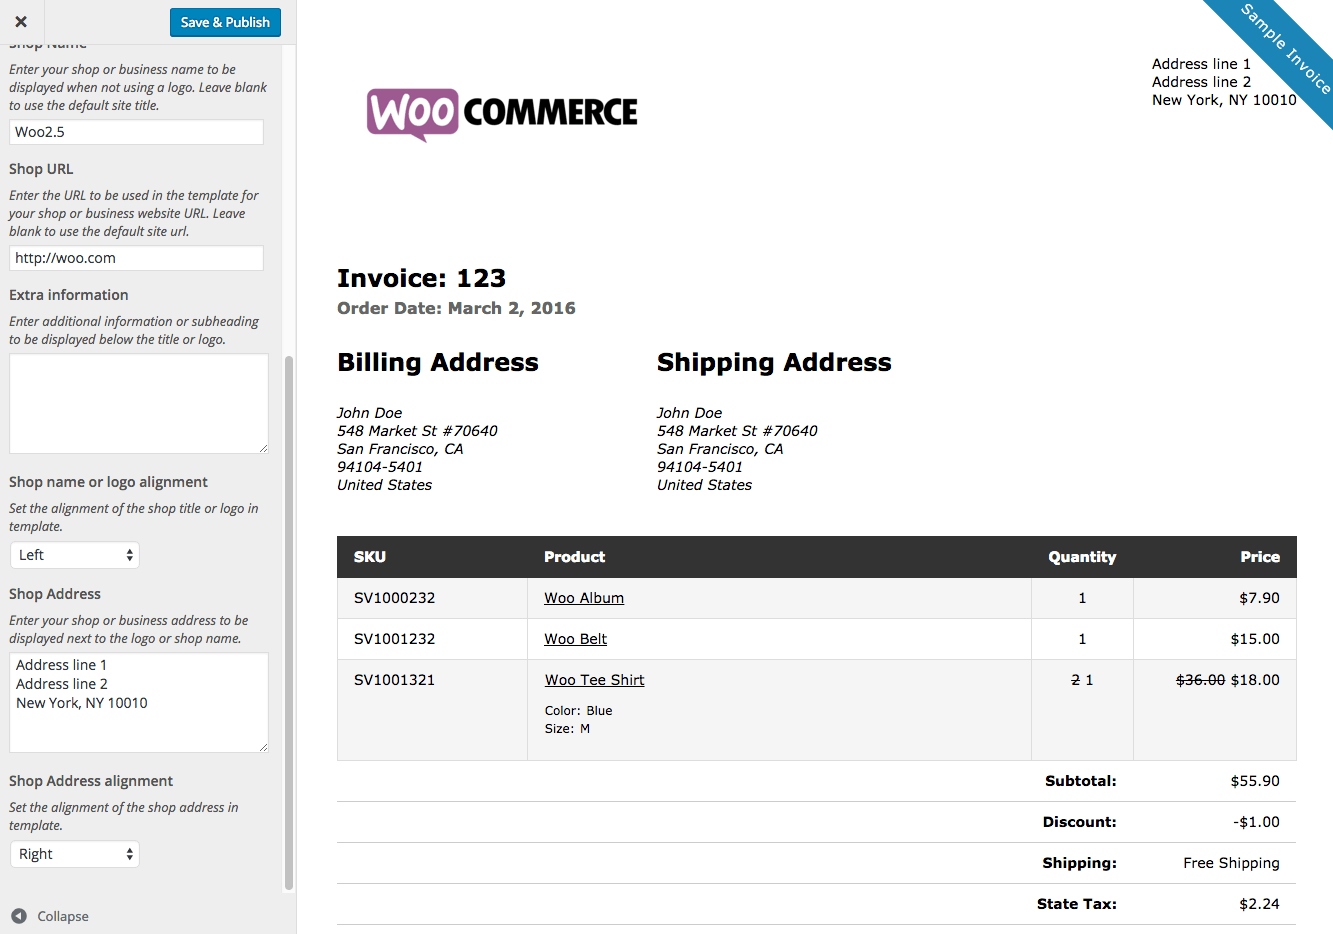 Ultrablogus  Outstanding Woocommerce Print Invoices Amp Packing Lists  Woocommerce Docs With Licious Woocommerce Print Invoices  Packing Lists Customizer With Archaic Template For Cash Receipt Also Pulled Pork Receipt In Addition Neat Receipts Vs Scansnap And Neat Receipts Software For Mac As Well As Net Receipts Definition Additionally Us Visa Fee Receipt From Docswoocommercecom With Ultrablogus  Licious Woocommerce Print Invoices Amp Packing Lists  Woocommerce Docs With Archaic Woocommerce Print Invoices  Packing Lists Customizer And Outstanding Template For Cash Receipt Also Pulled Pork Receipt In Addition Neat Receipts Vs Scansnap From Docswoocommercecom